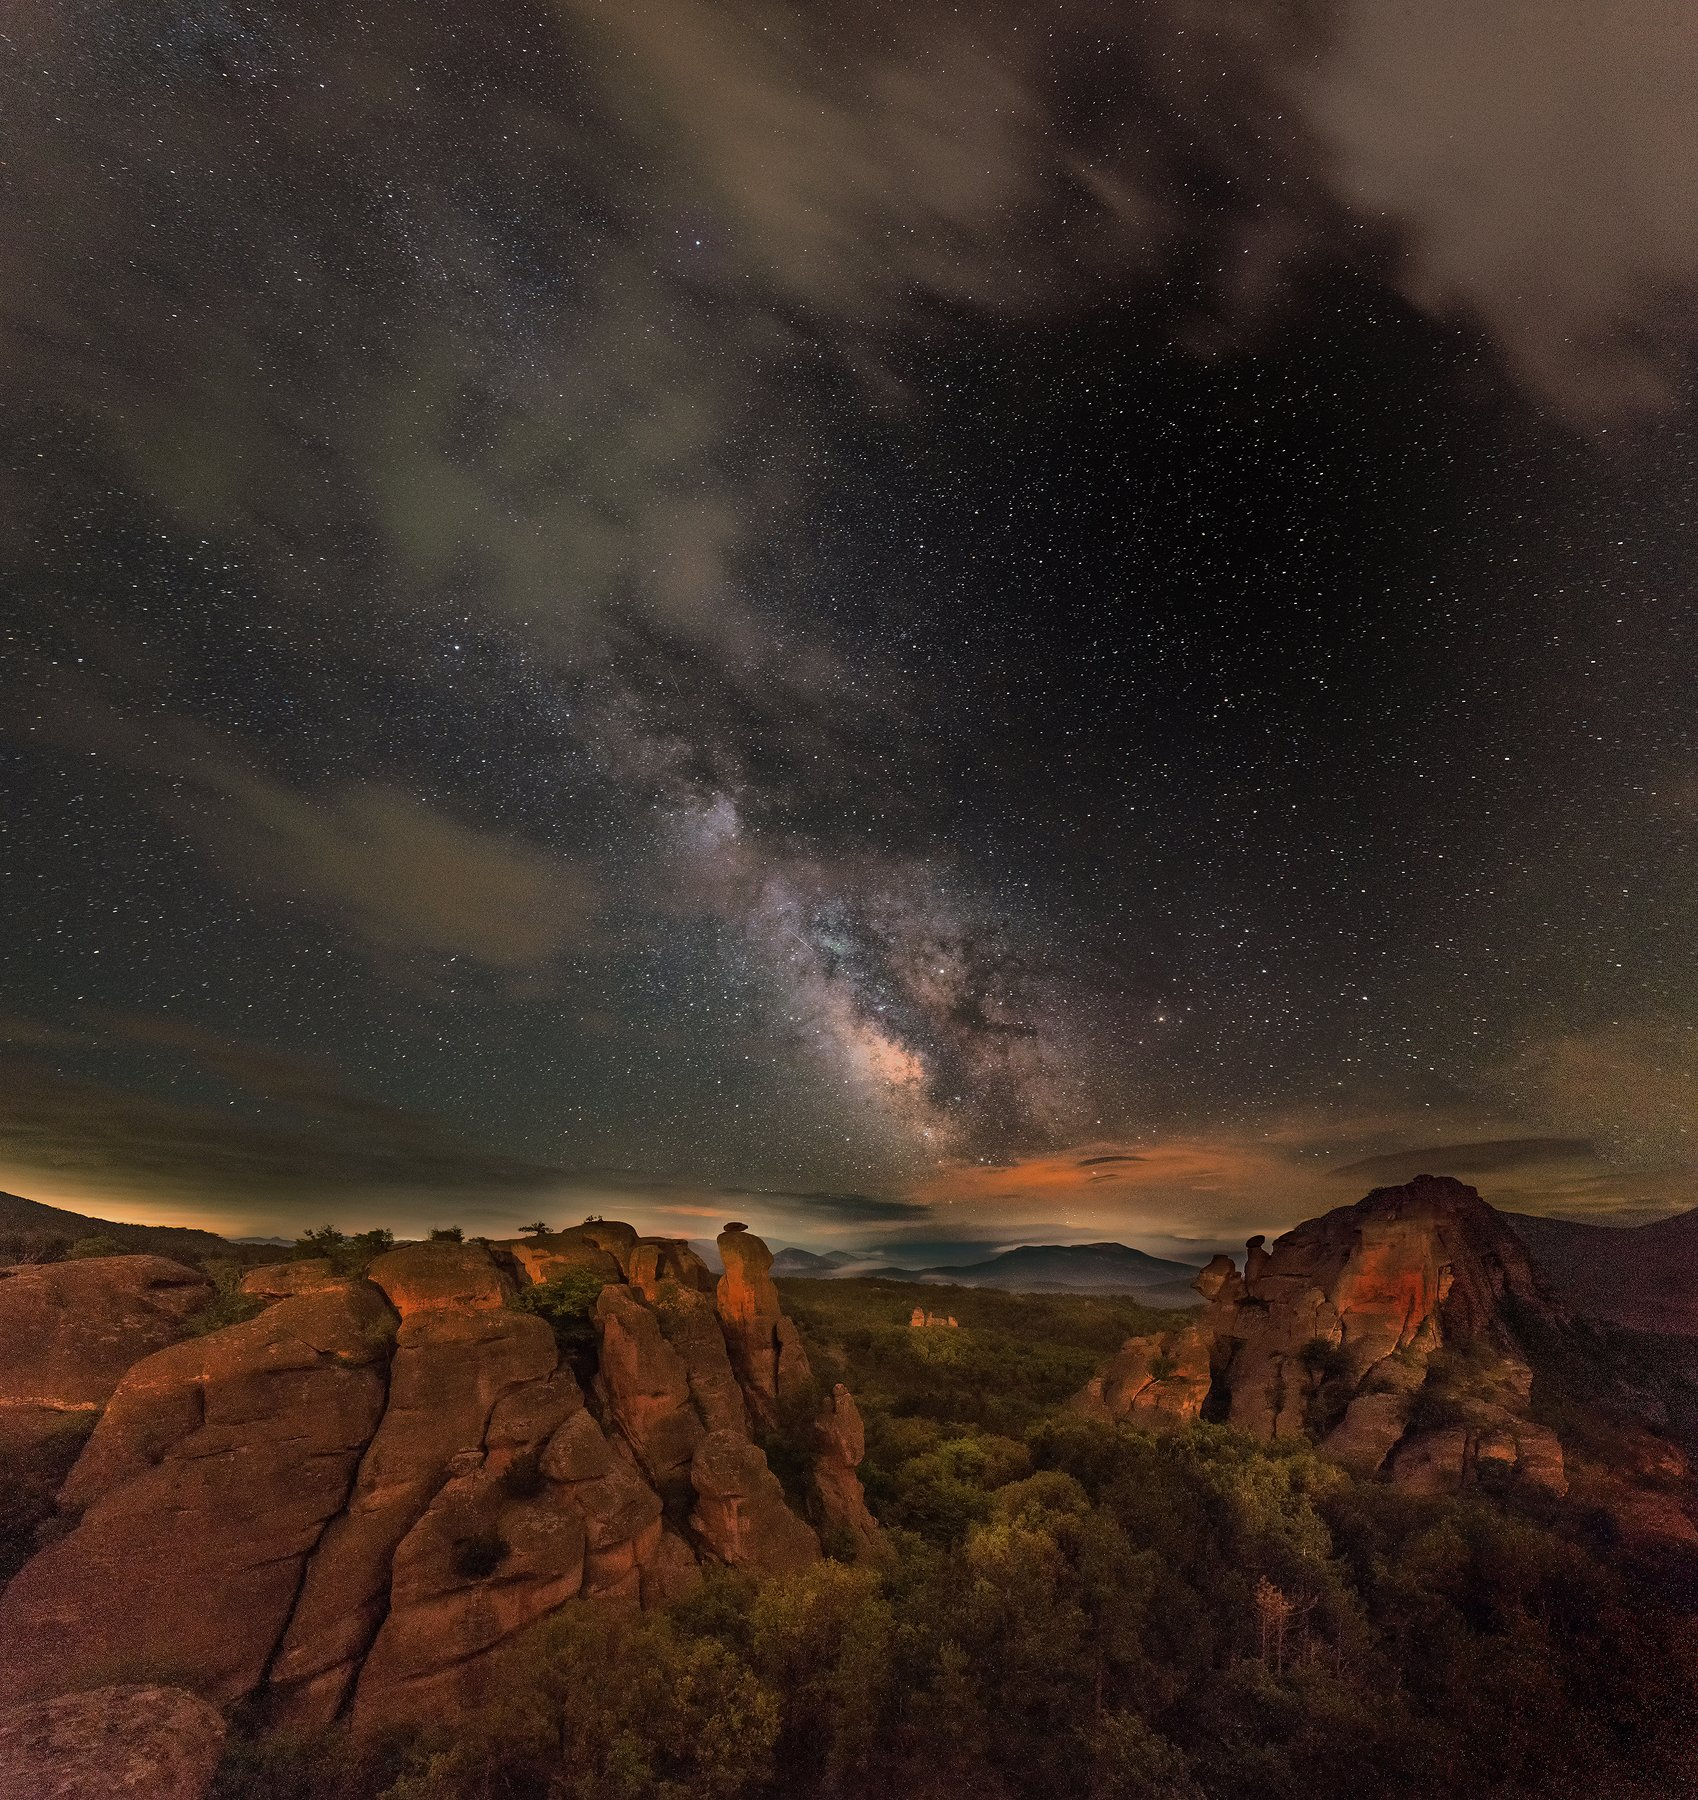 astrophotography,stars,night,Bulgaria,Belogradchik,nightscapes,rocks,red rocks, Даниел Балъков